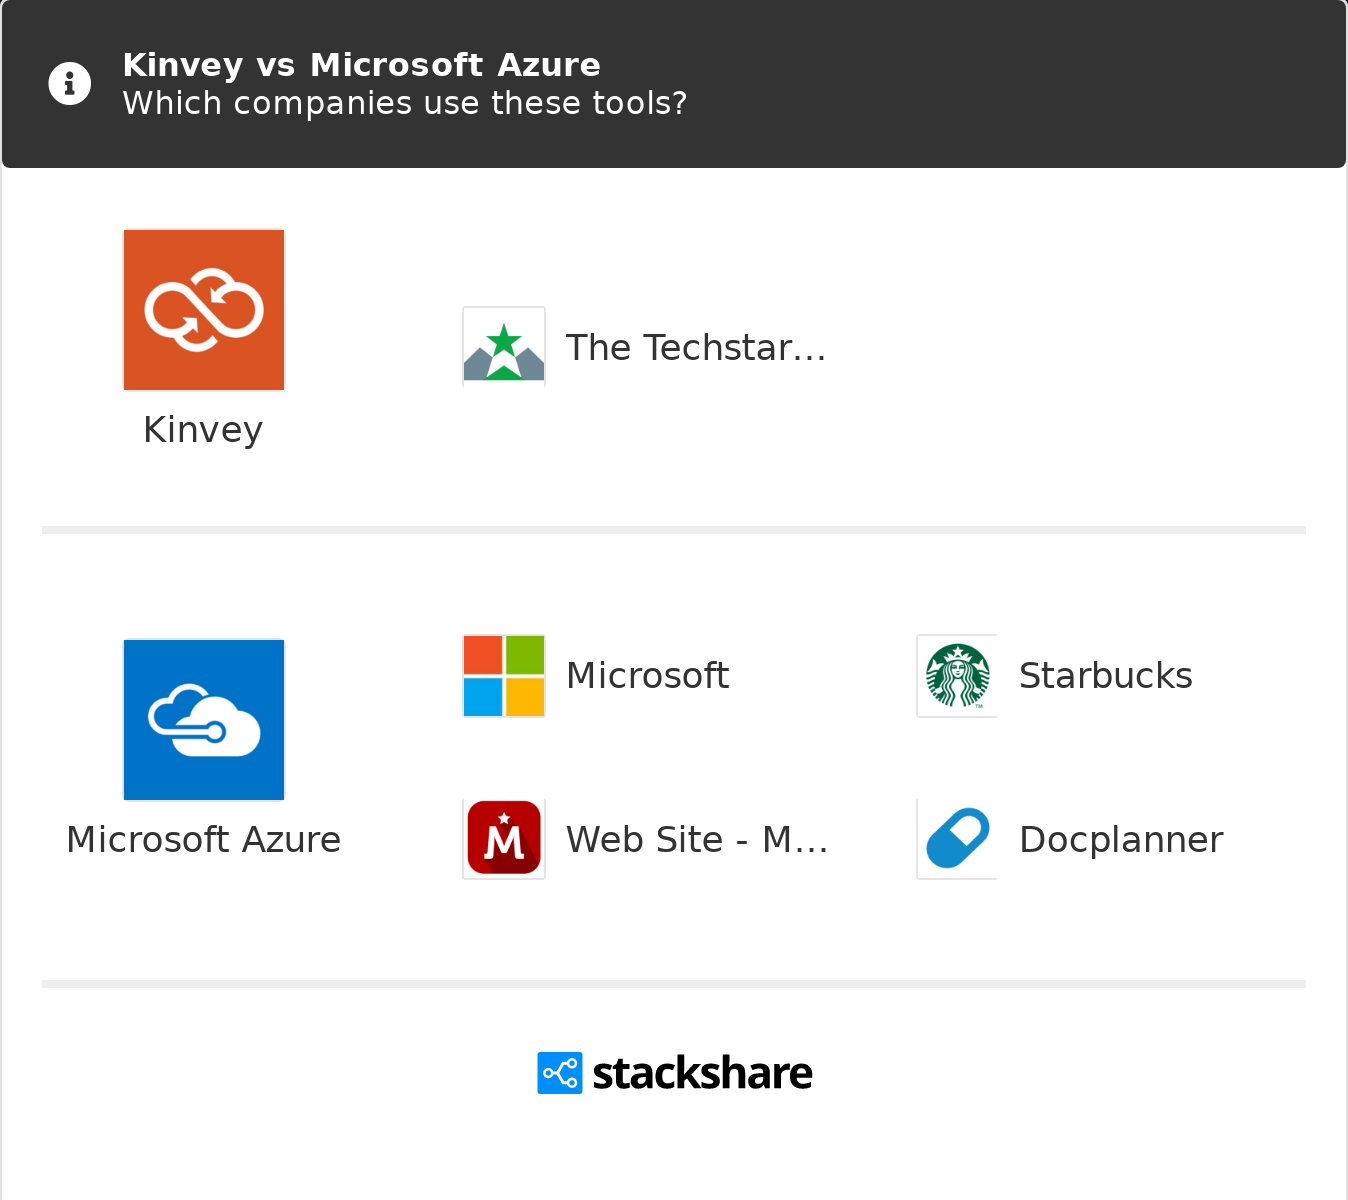 Kinvey vs Microsoft Azure | What are the differences?